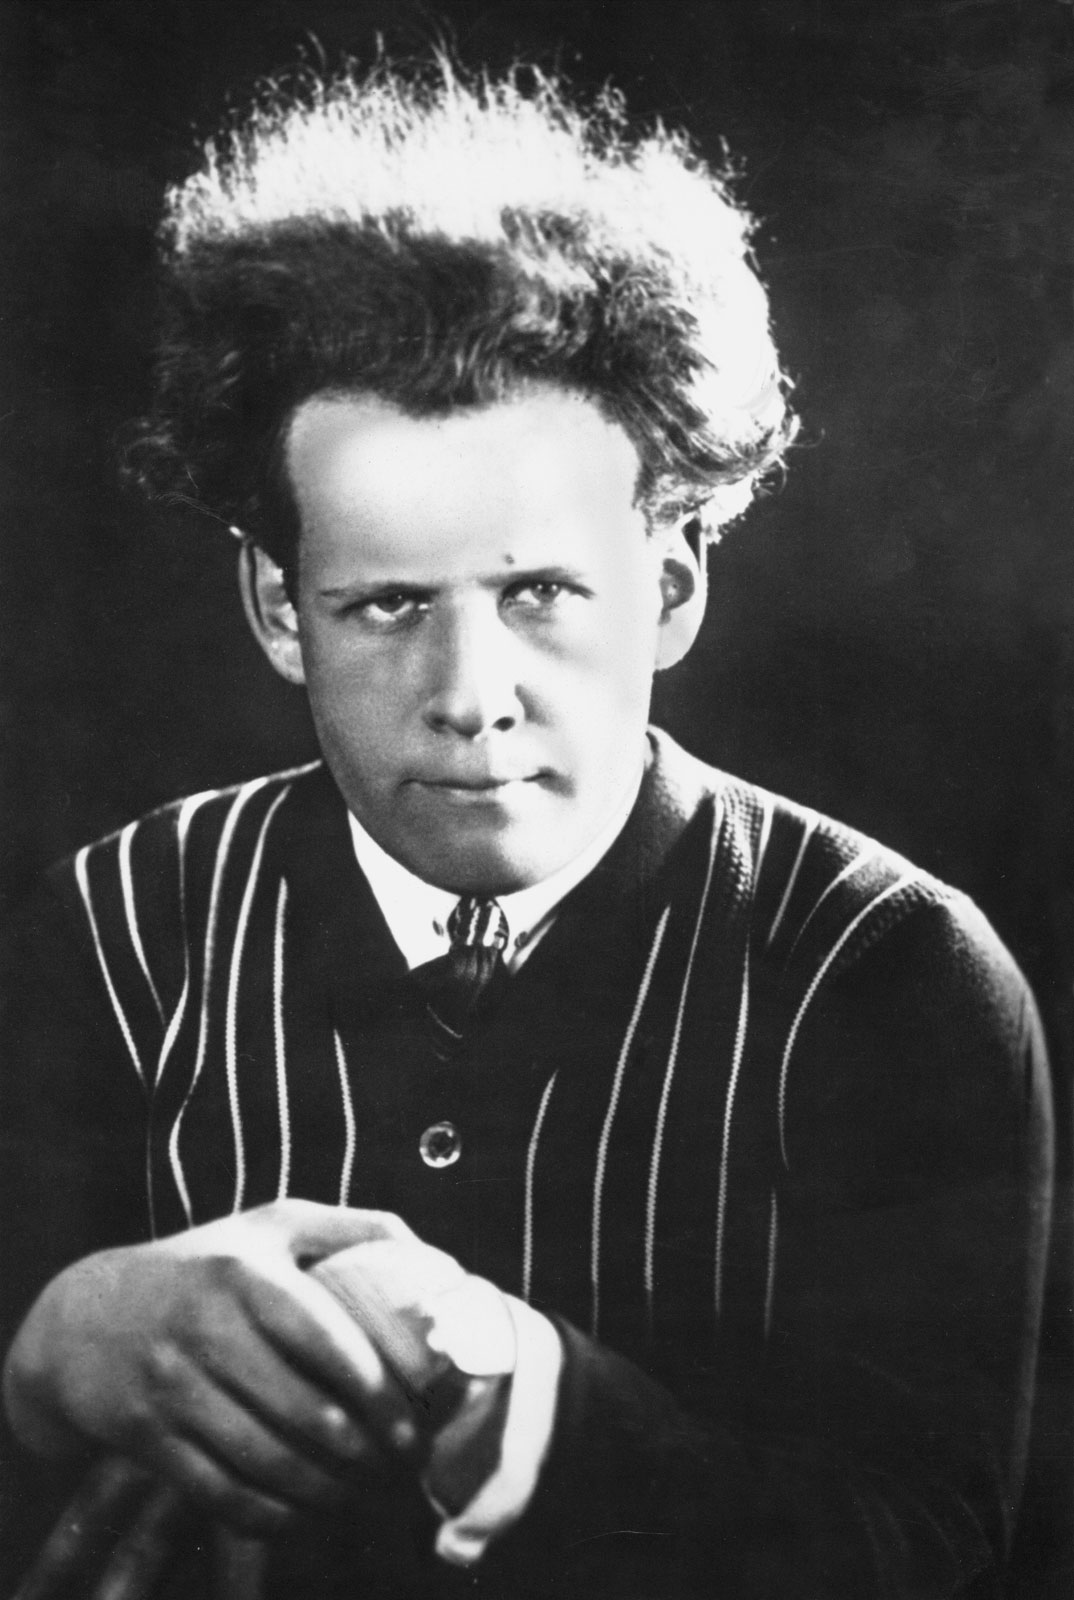 eisenstein film for essays in film theory Browse and read film form essays in film theory by sergei eisenstein film form essays in film theory by sergei eisenstein new updated the latest book from a very.